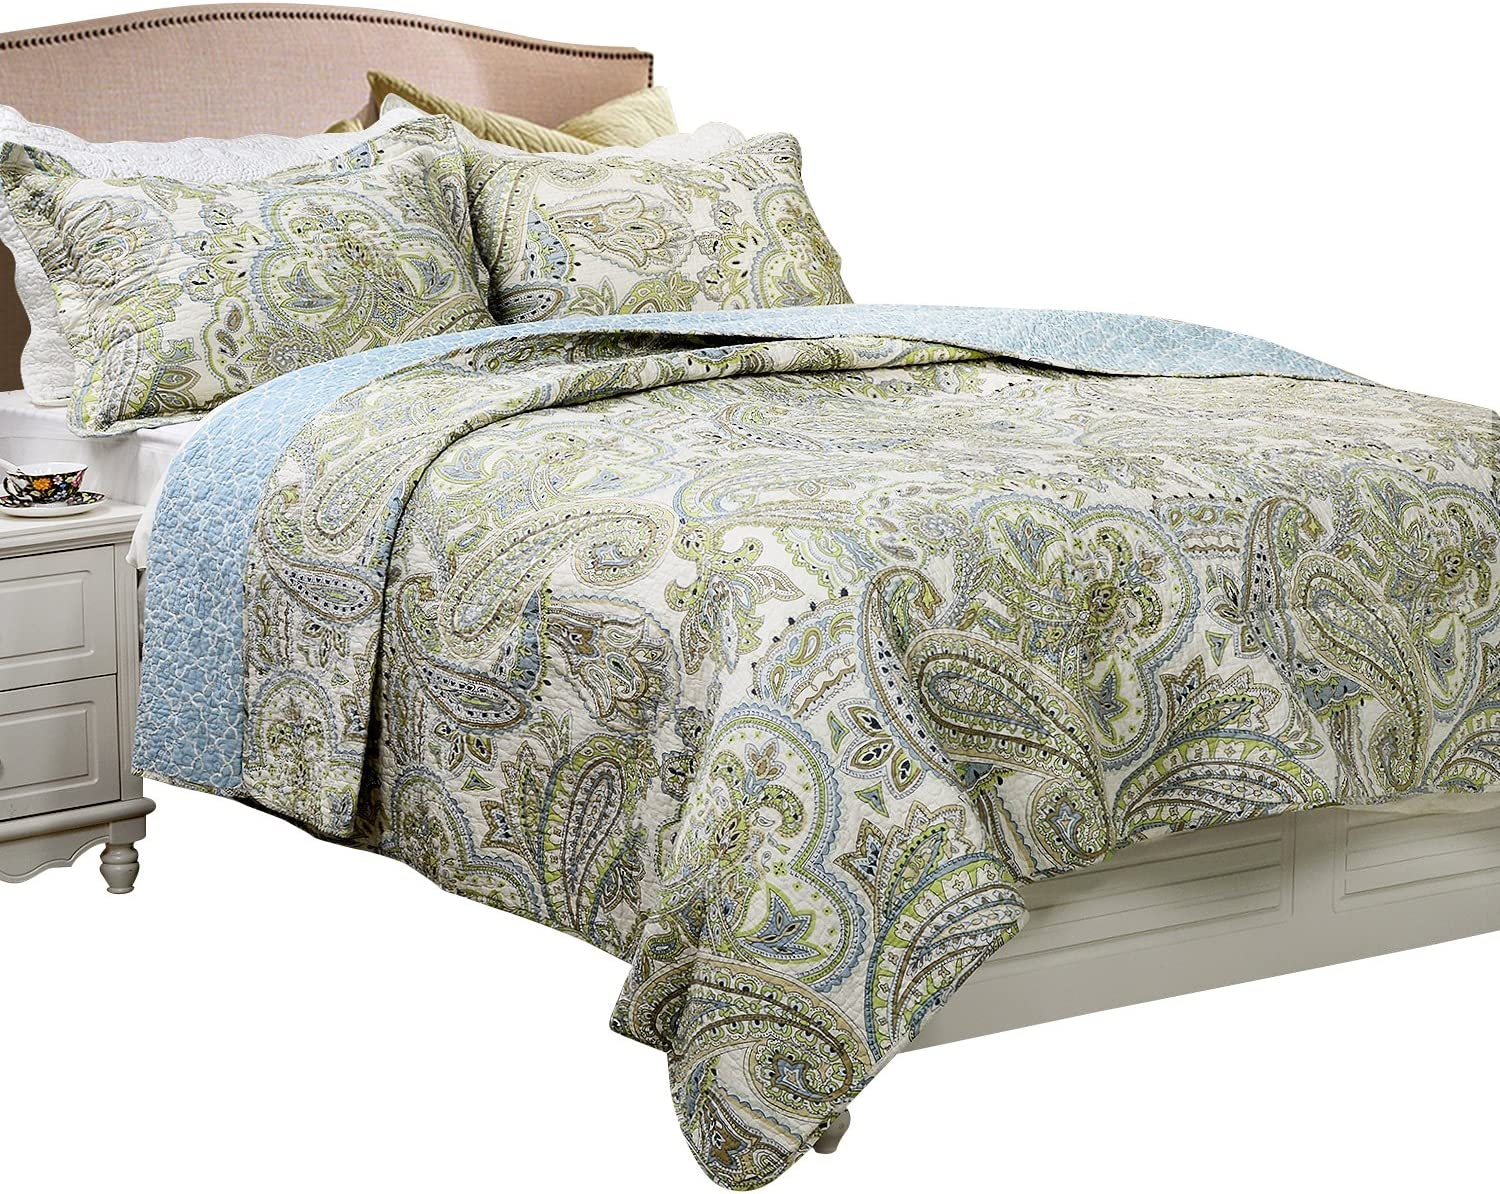 Brandream Green Paisley Printed Bedding Set Luxury Oversized Queen Quilt Set Soft Cotton Romantic Bedspreads Queen Size Kitchen Dining